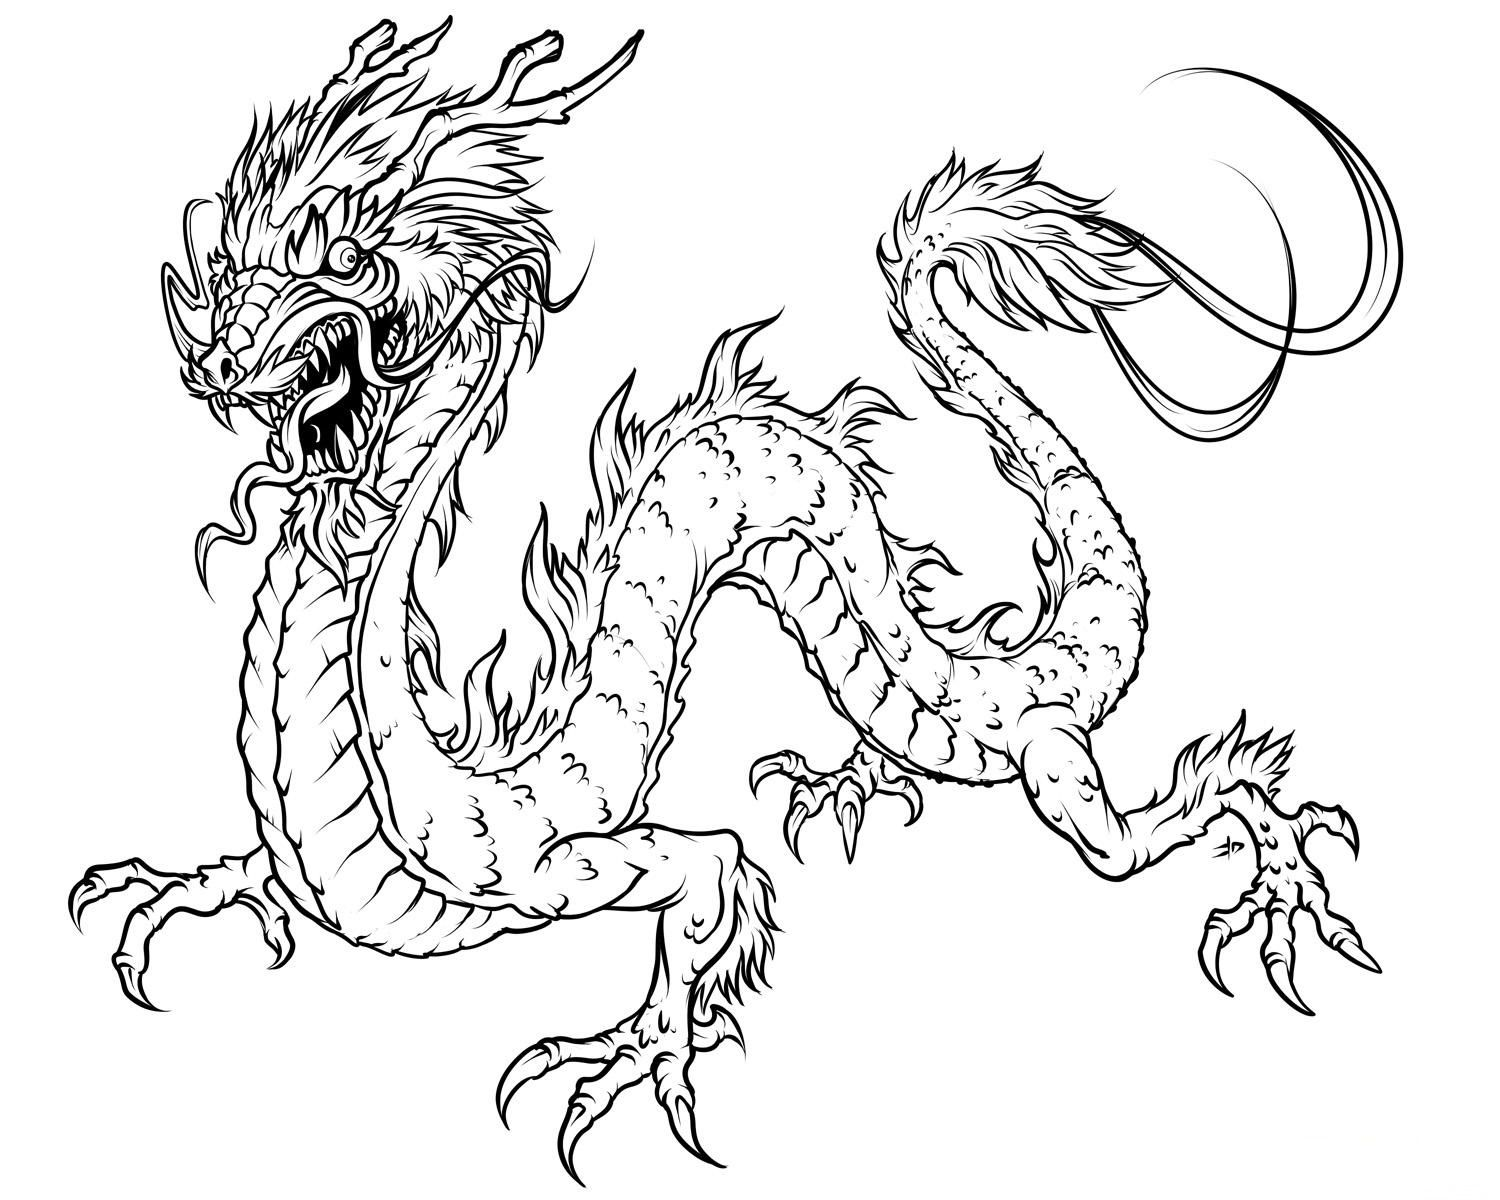 Printable coloring pages of dragons - Realistic Coloring Pages Of Dragons Printable Coloring Pages Sheets For Kids Get The Latest Free Realistic Coloring Pages Of Dragons Images